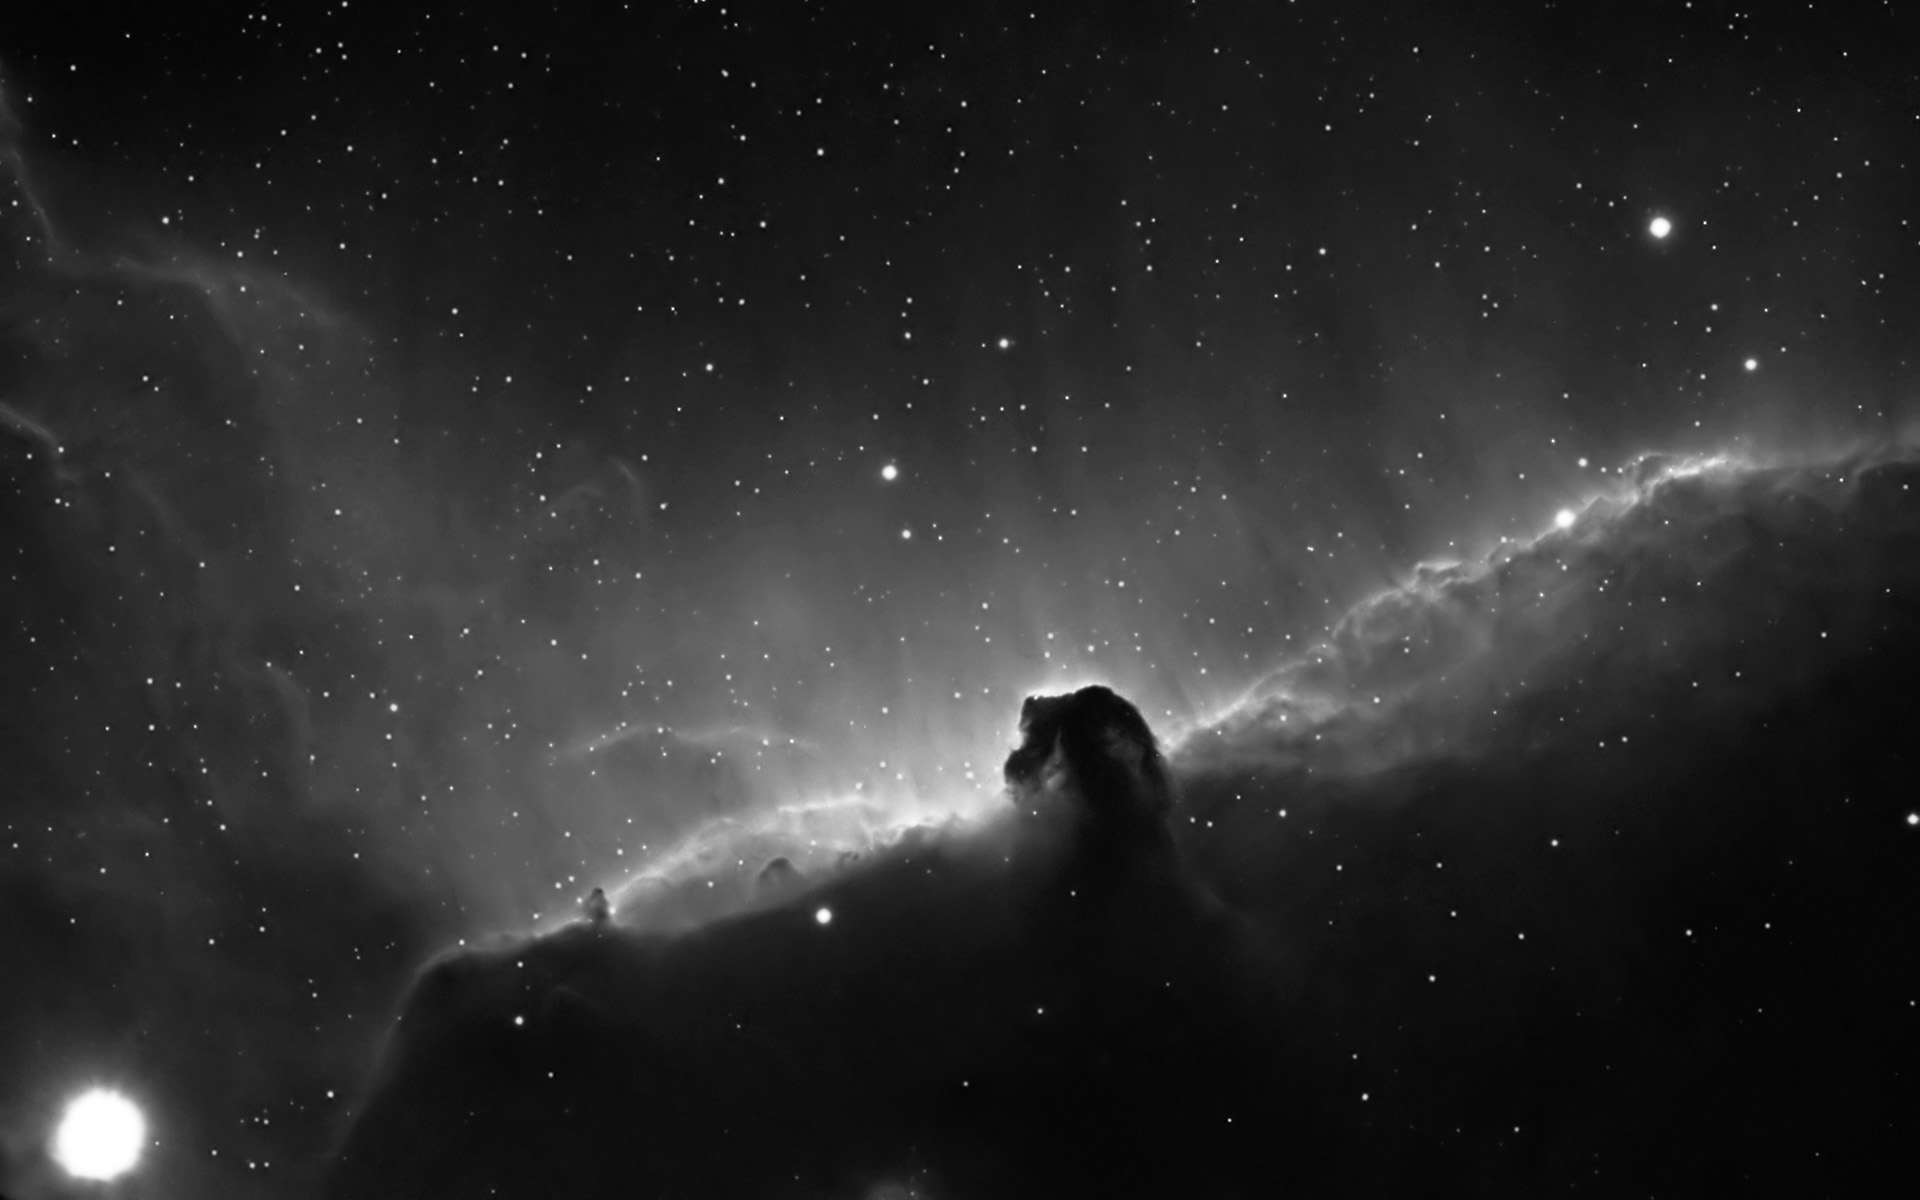 Andromeda Galaxy Wallpaper Iphone Horsehead And Flame Nebula In Orion 20da Large